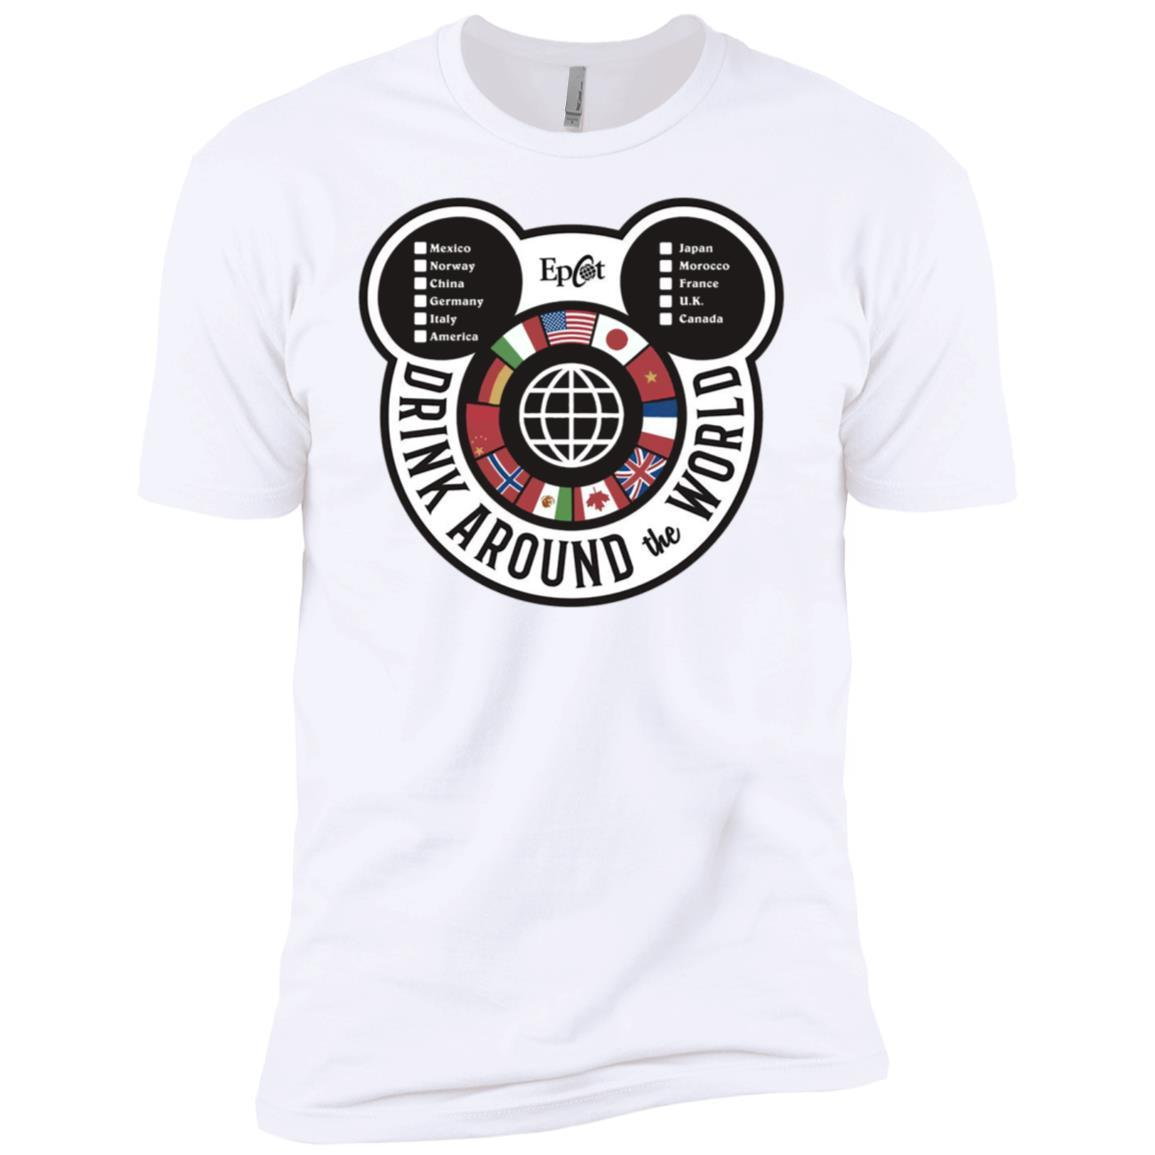 Drink Around the World - EPCOT Checklist - Short Sleeve T-Shirt White / 4XL